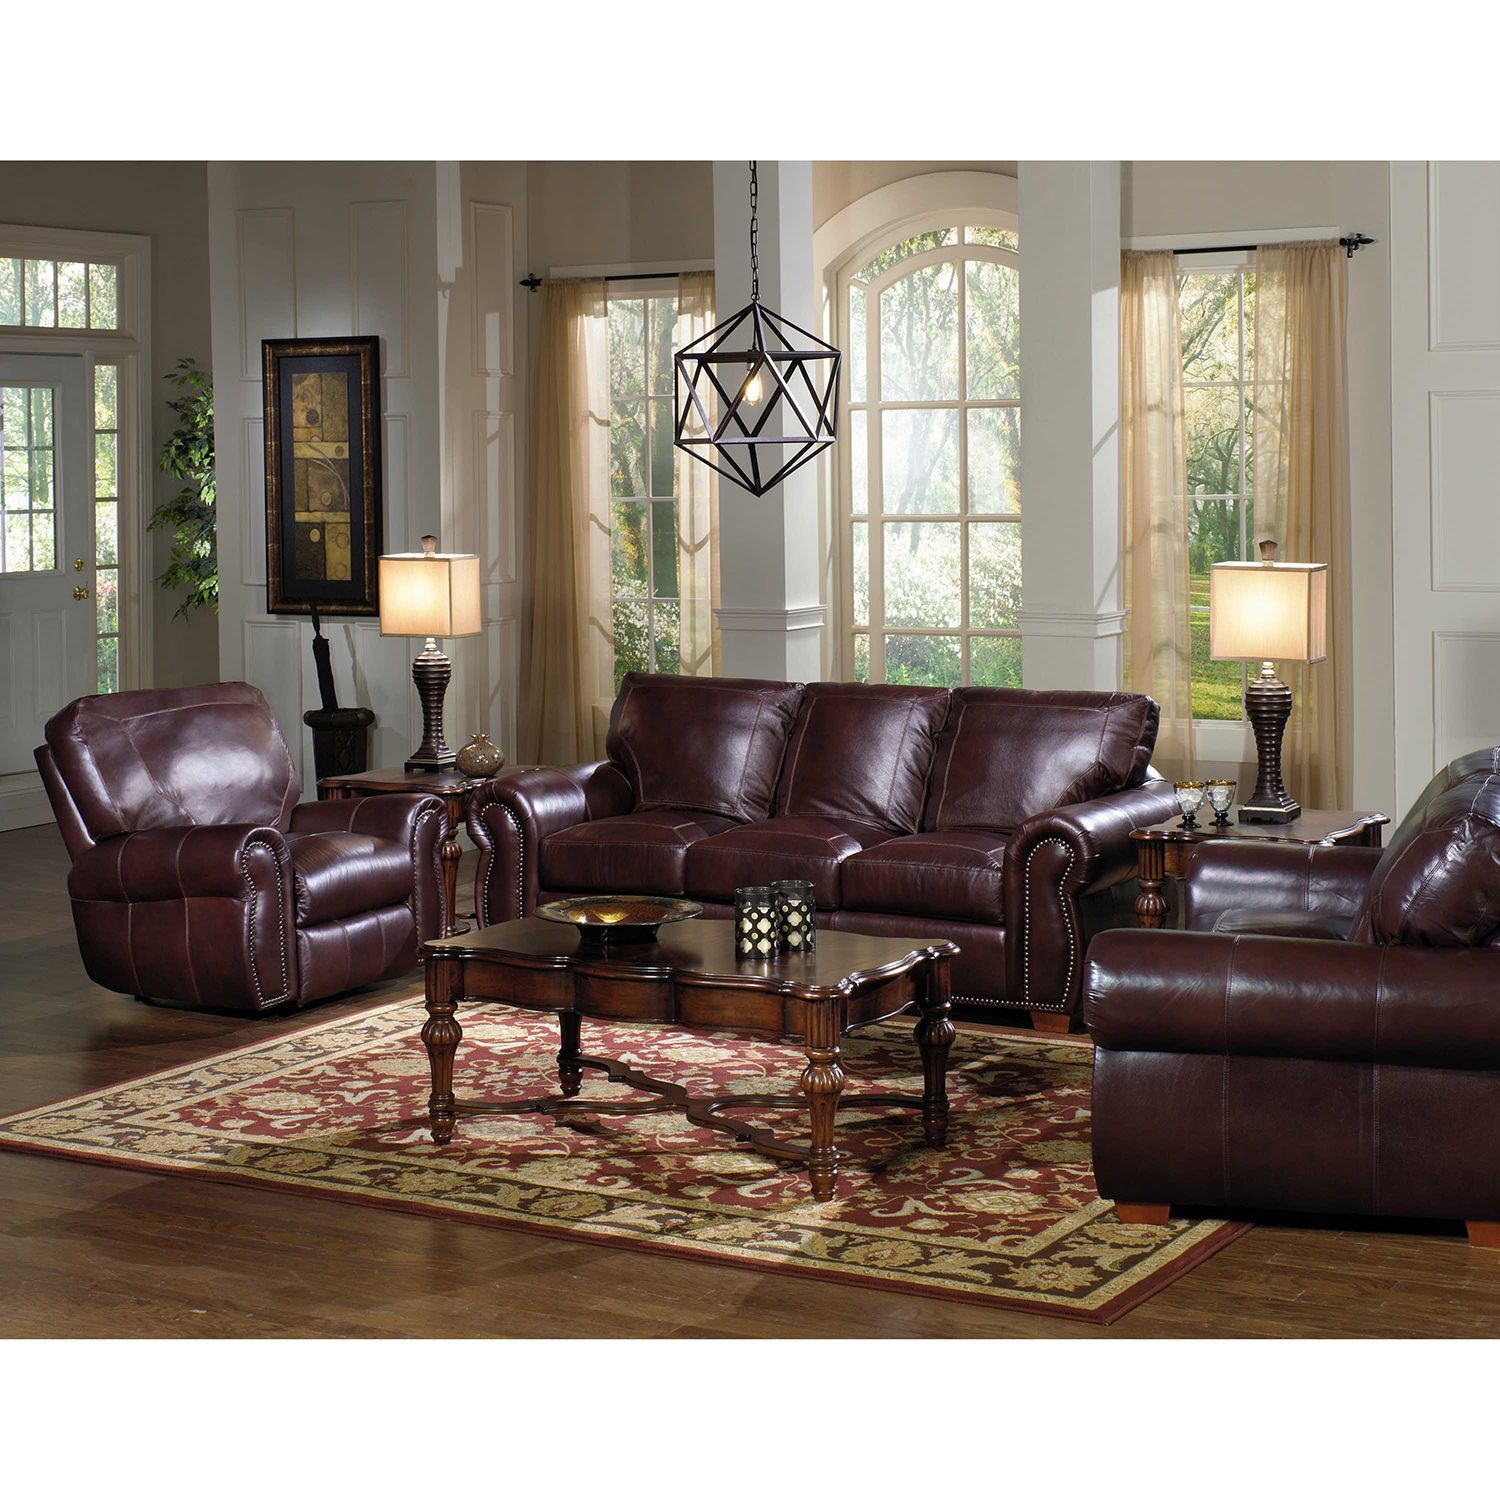 rooms to go leather sofa set diy pallet sectional kingston top grain loveseat and recliner